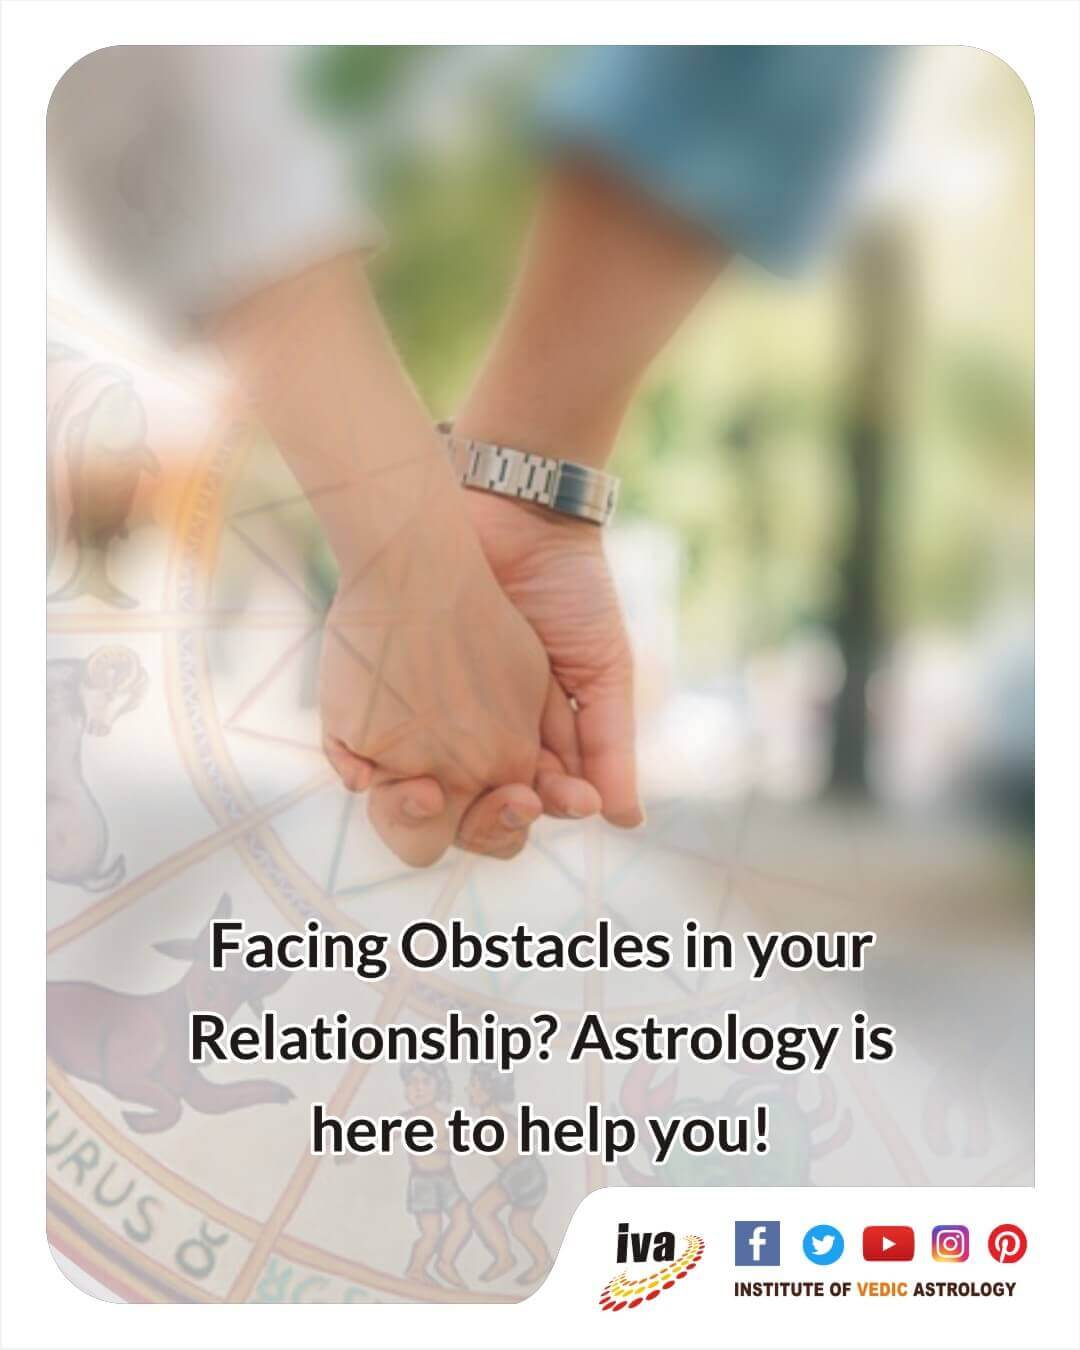 Facing Obstacles in your relationship? Astrology is here to help you!